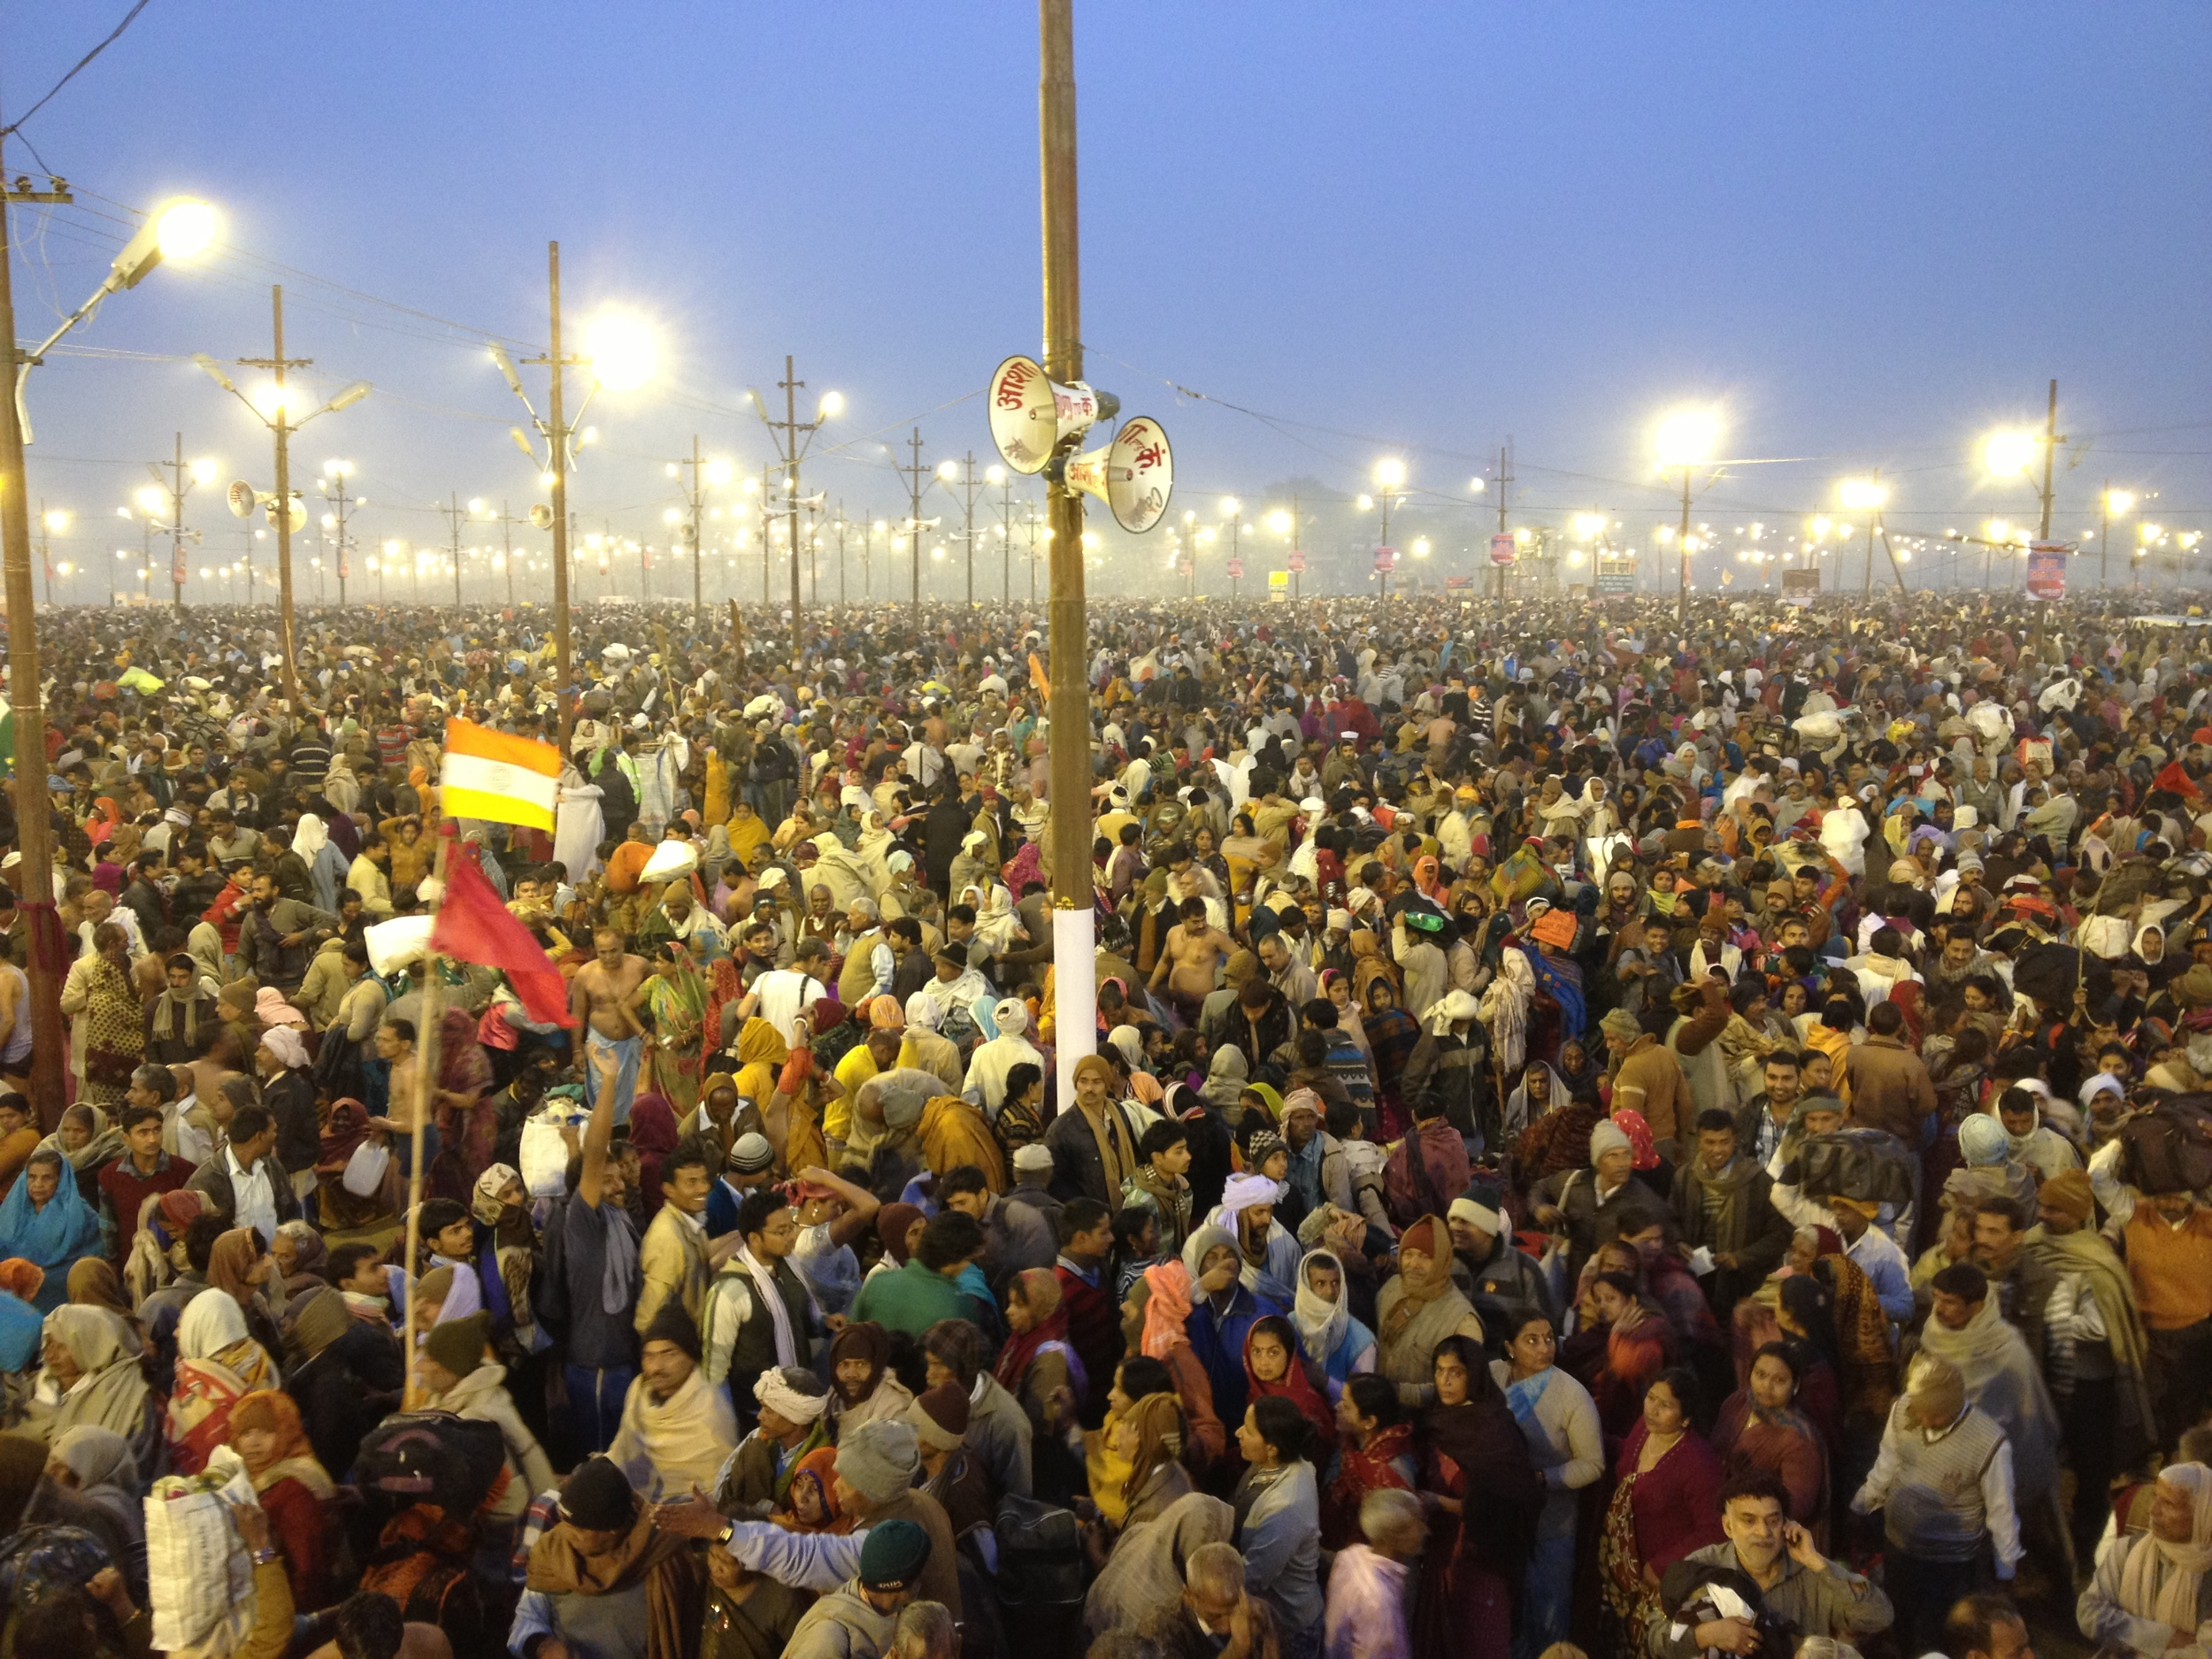 The most auspicious bathing day at the Kumbh, almost 30 million people came to bathe on this day!